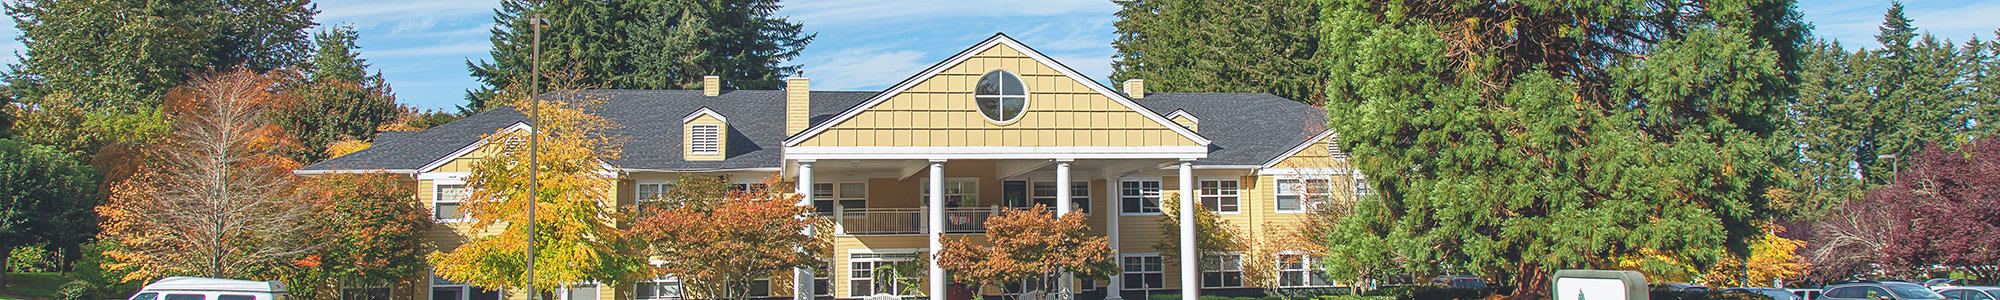 frequently asked questions at The Sequoia Assisted Living Community